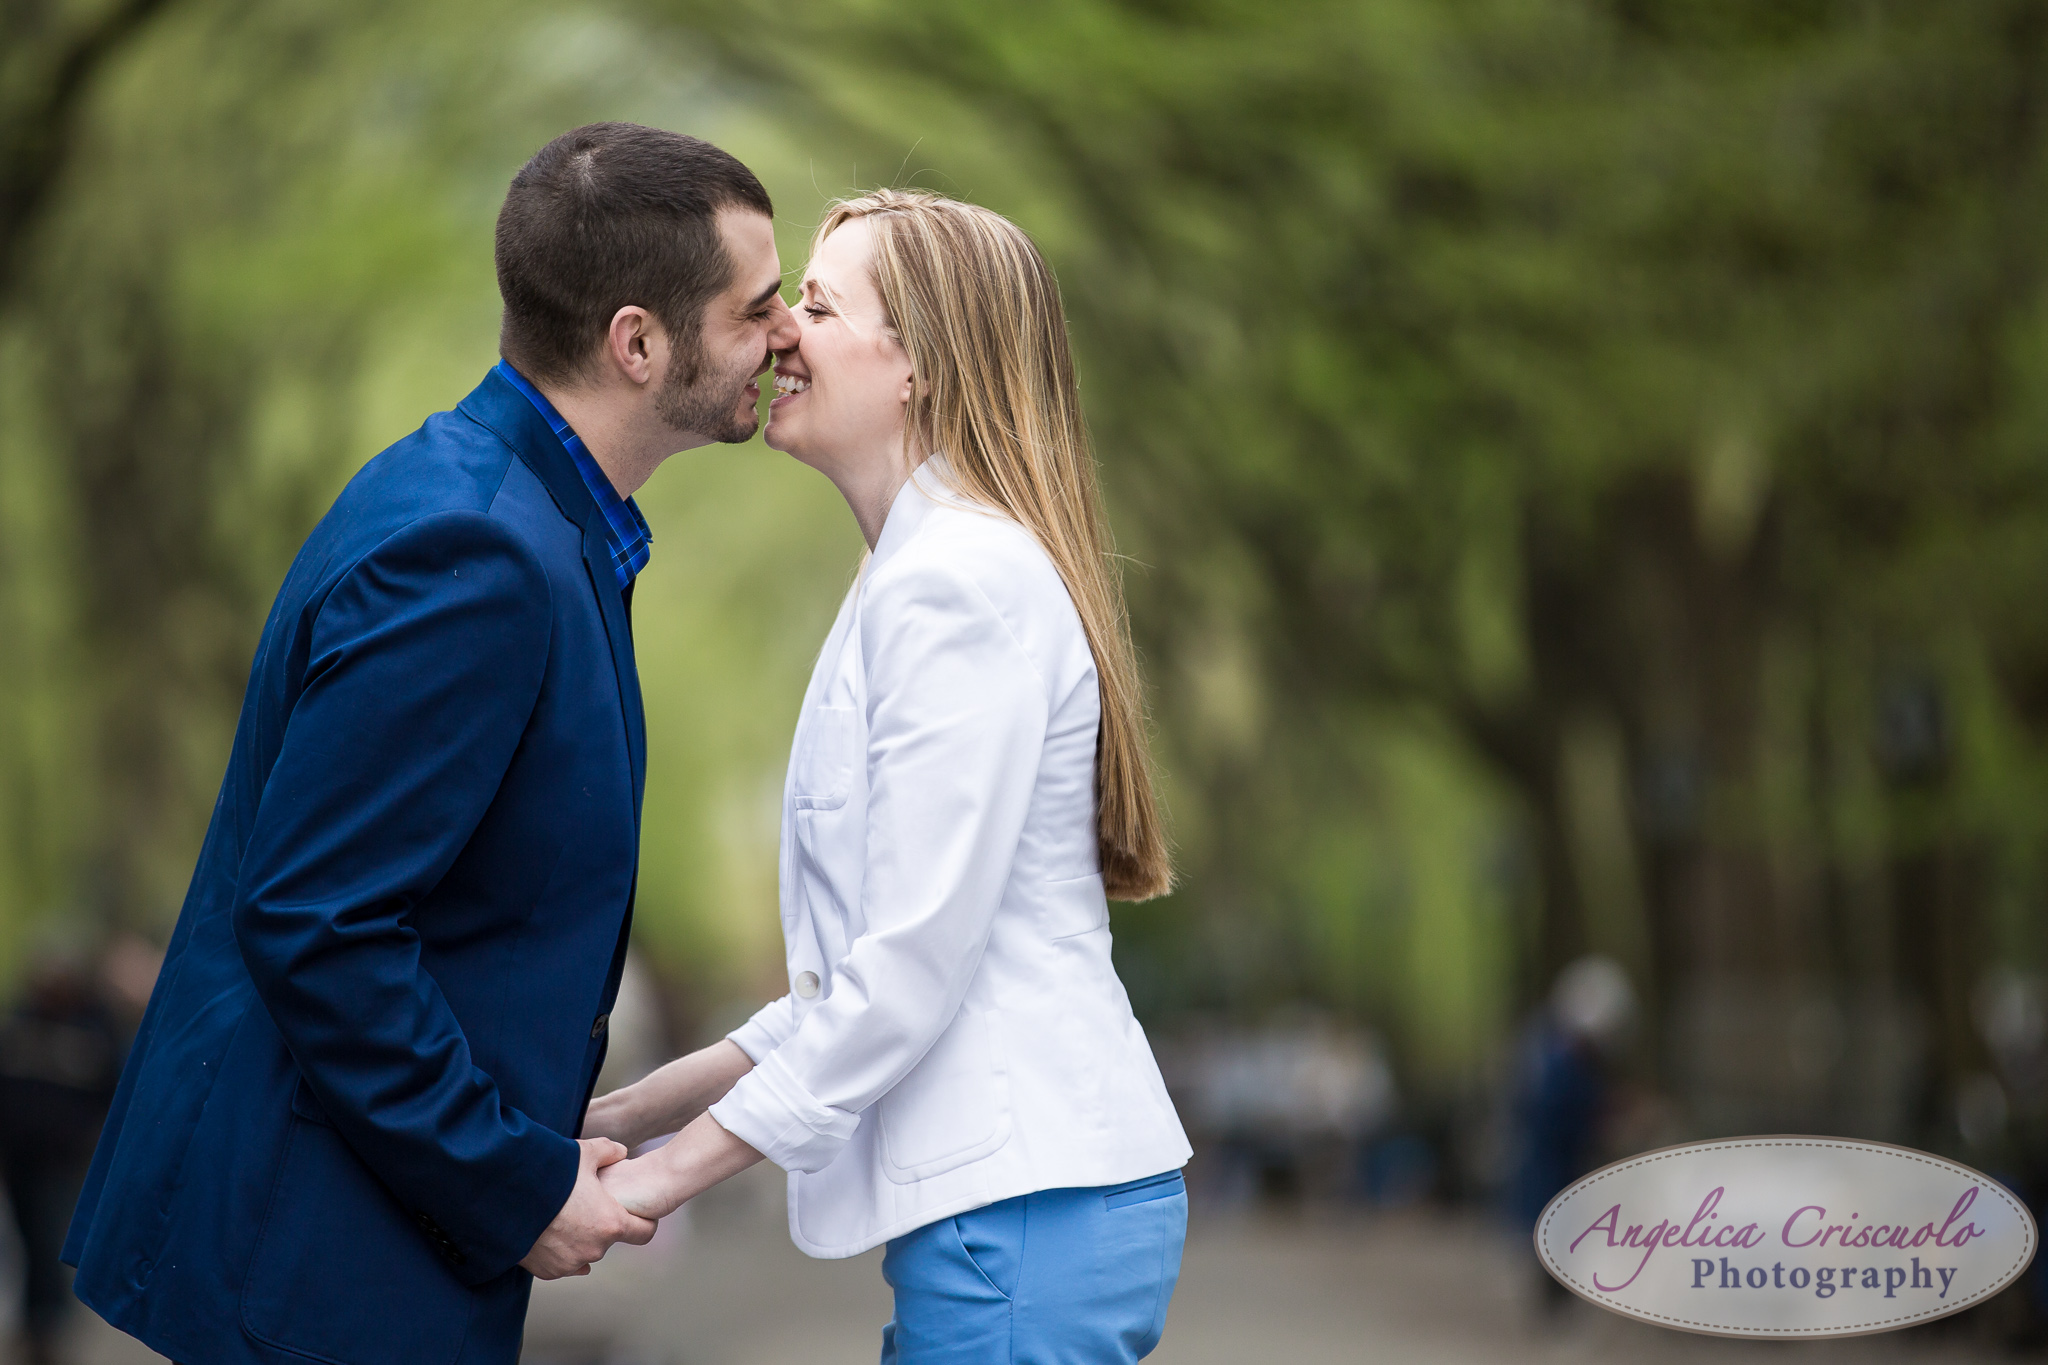 engagement session in central park The Mall